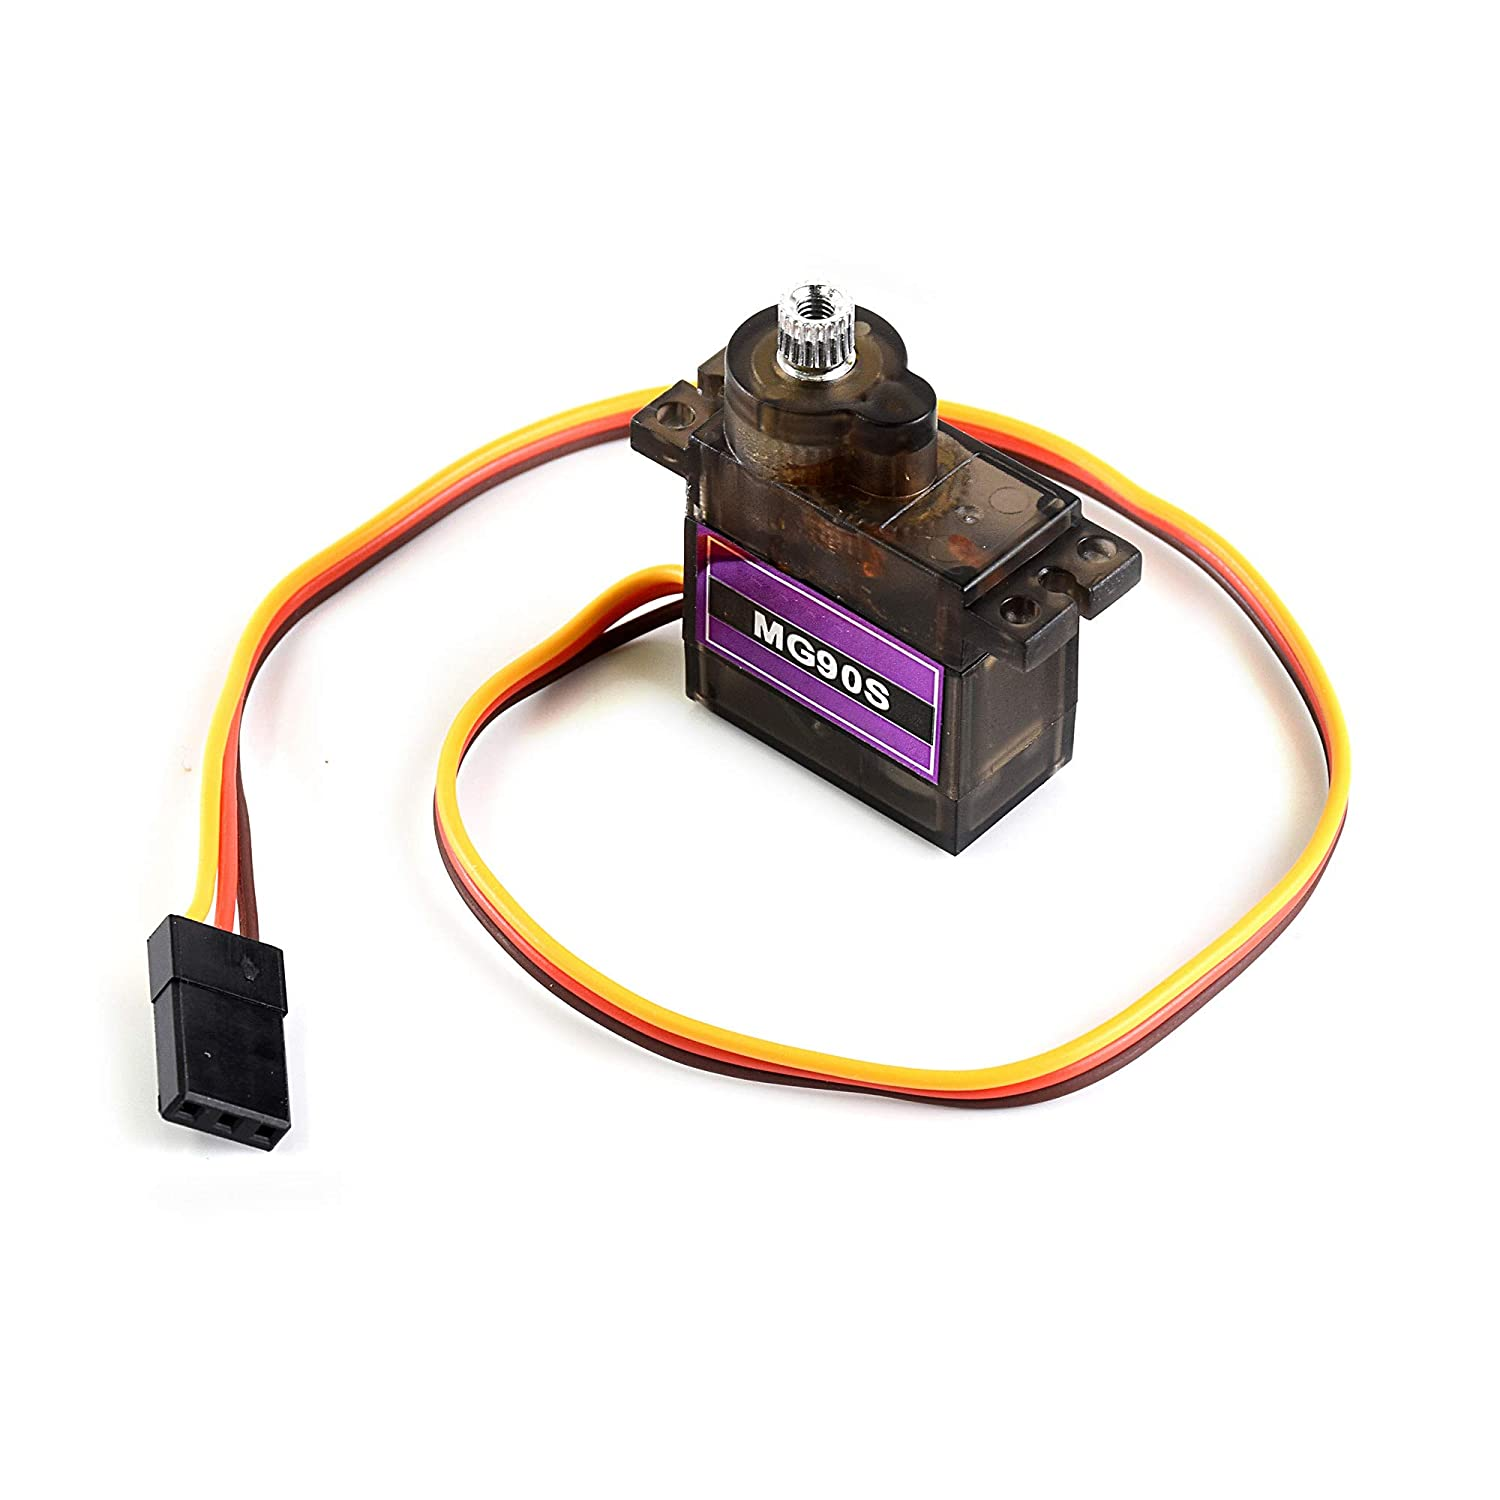 Metal-Geared Servo Motor 6V . 4.8V Can Rotate Approximately 180 Degrees 2.8kg//cm Speed of 0.11s// 6V 0.09s// 4.8V Used to Add Power to Robot MG90S Micro Servo Motor Torque of 2.0kg//cm